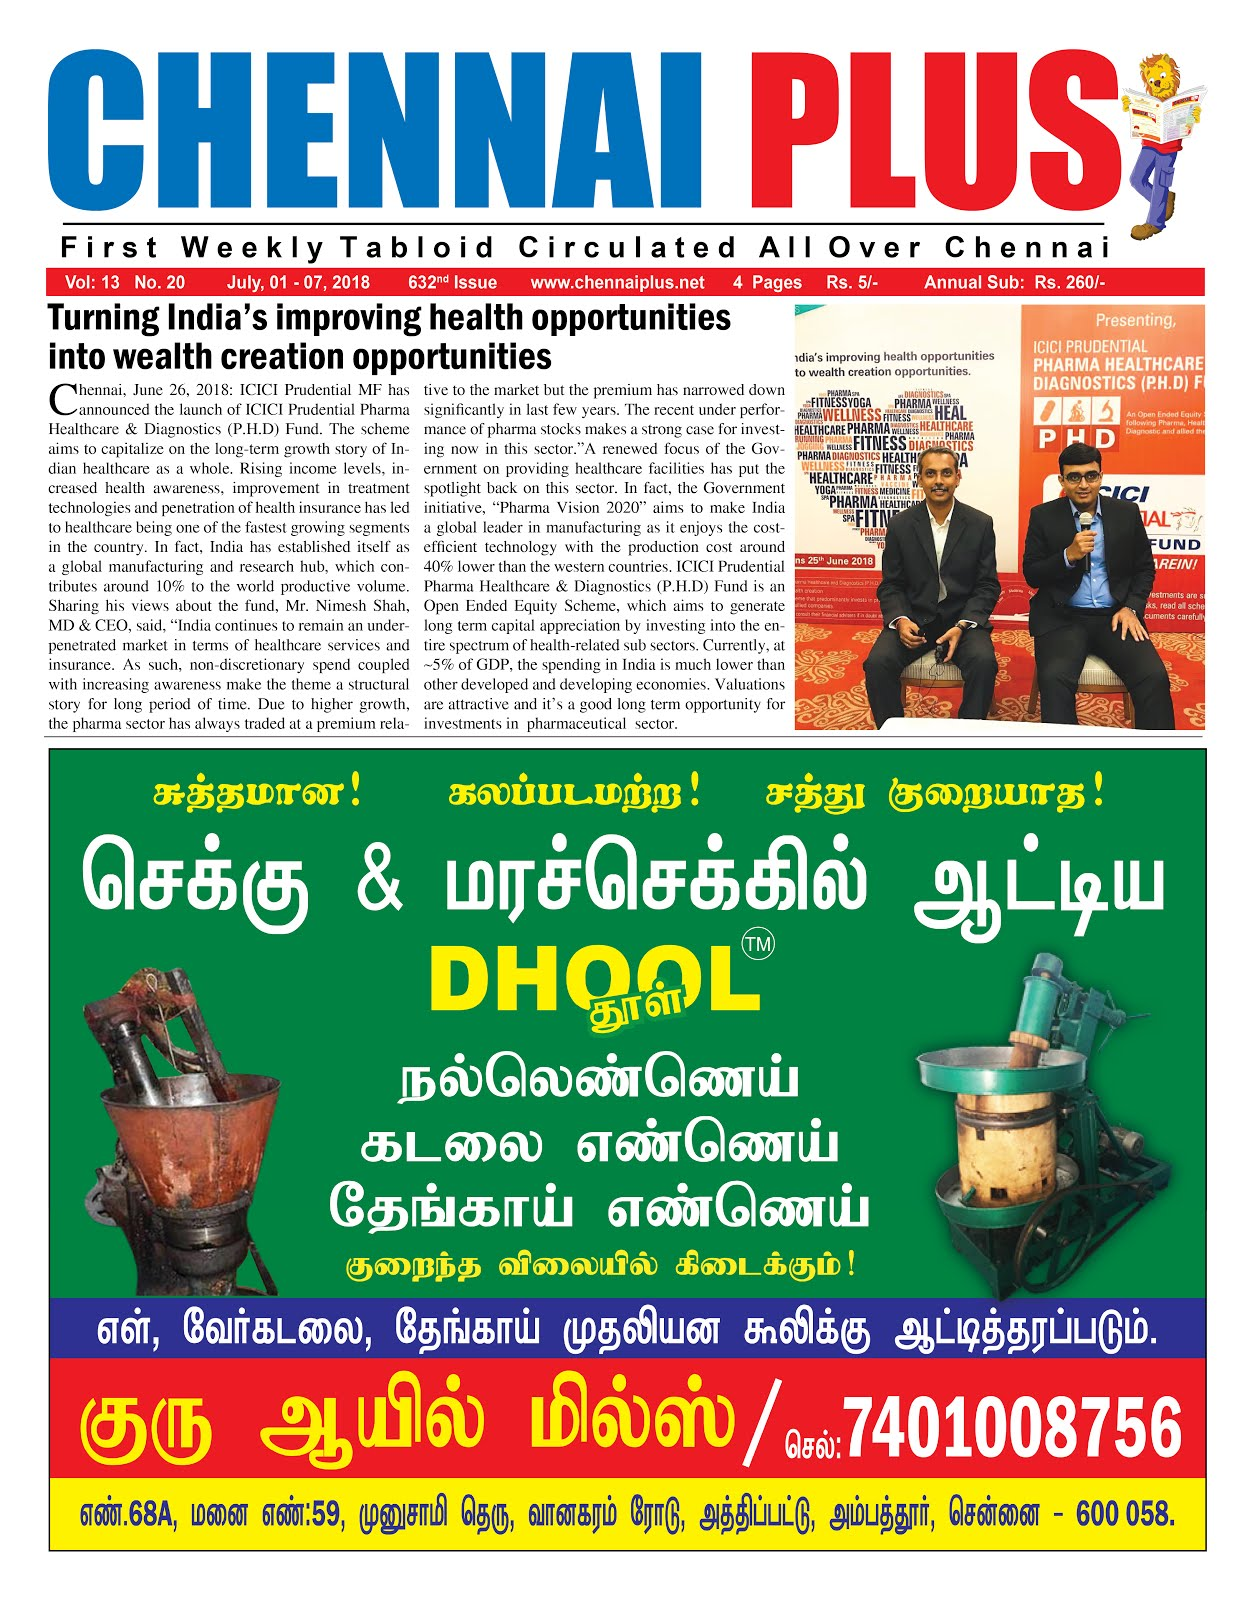 Chennai Plus_01.07.2018_Issue